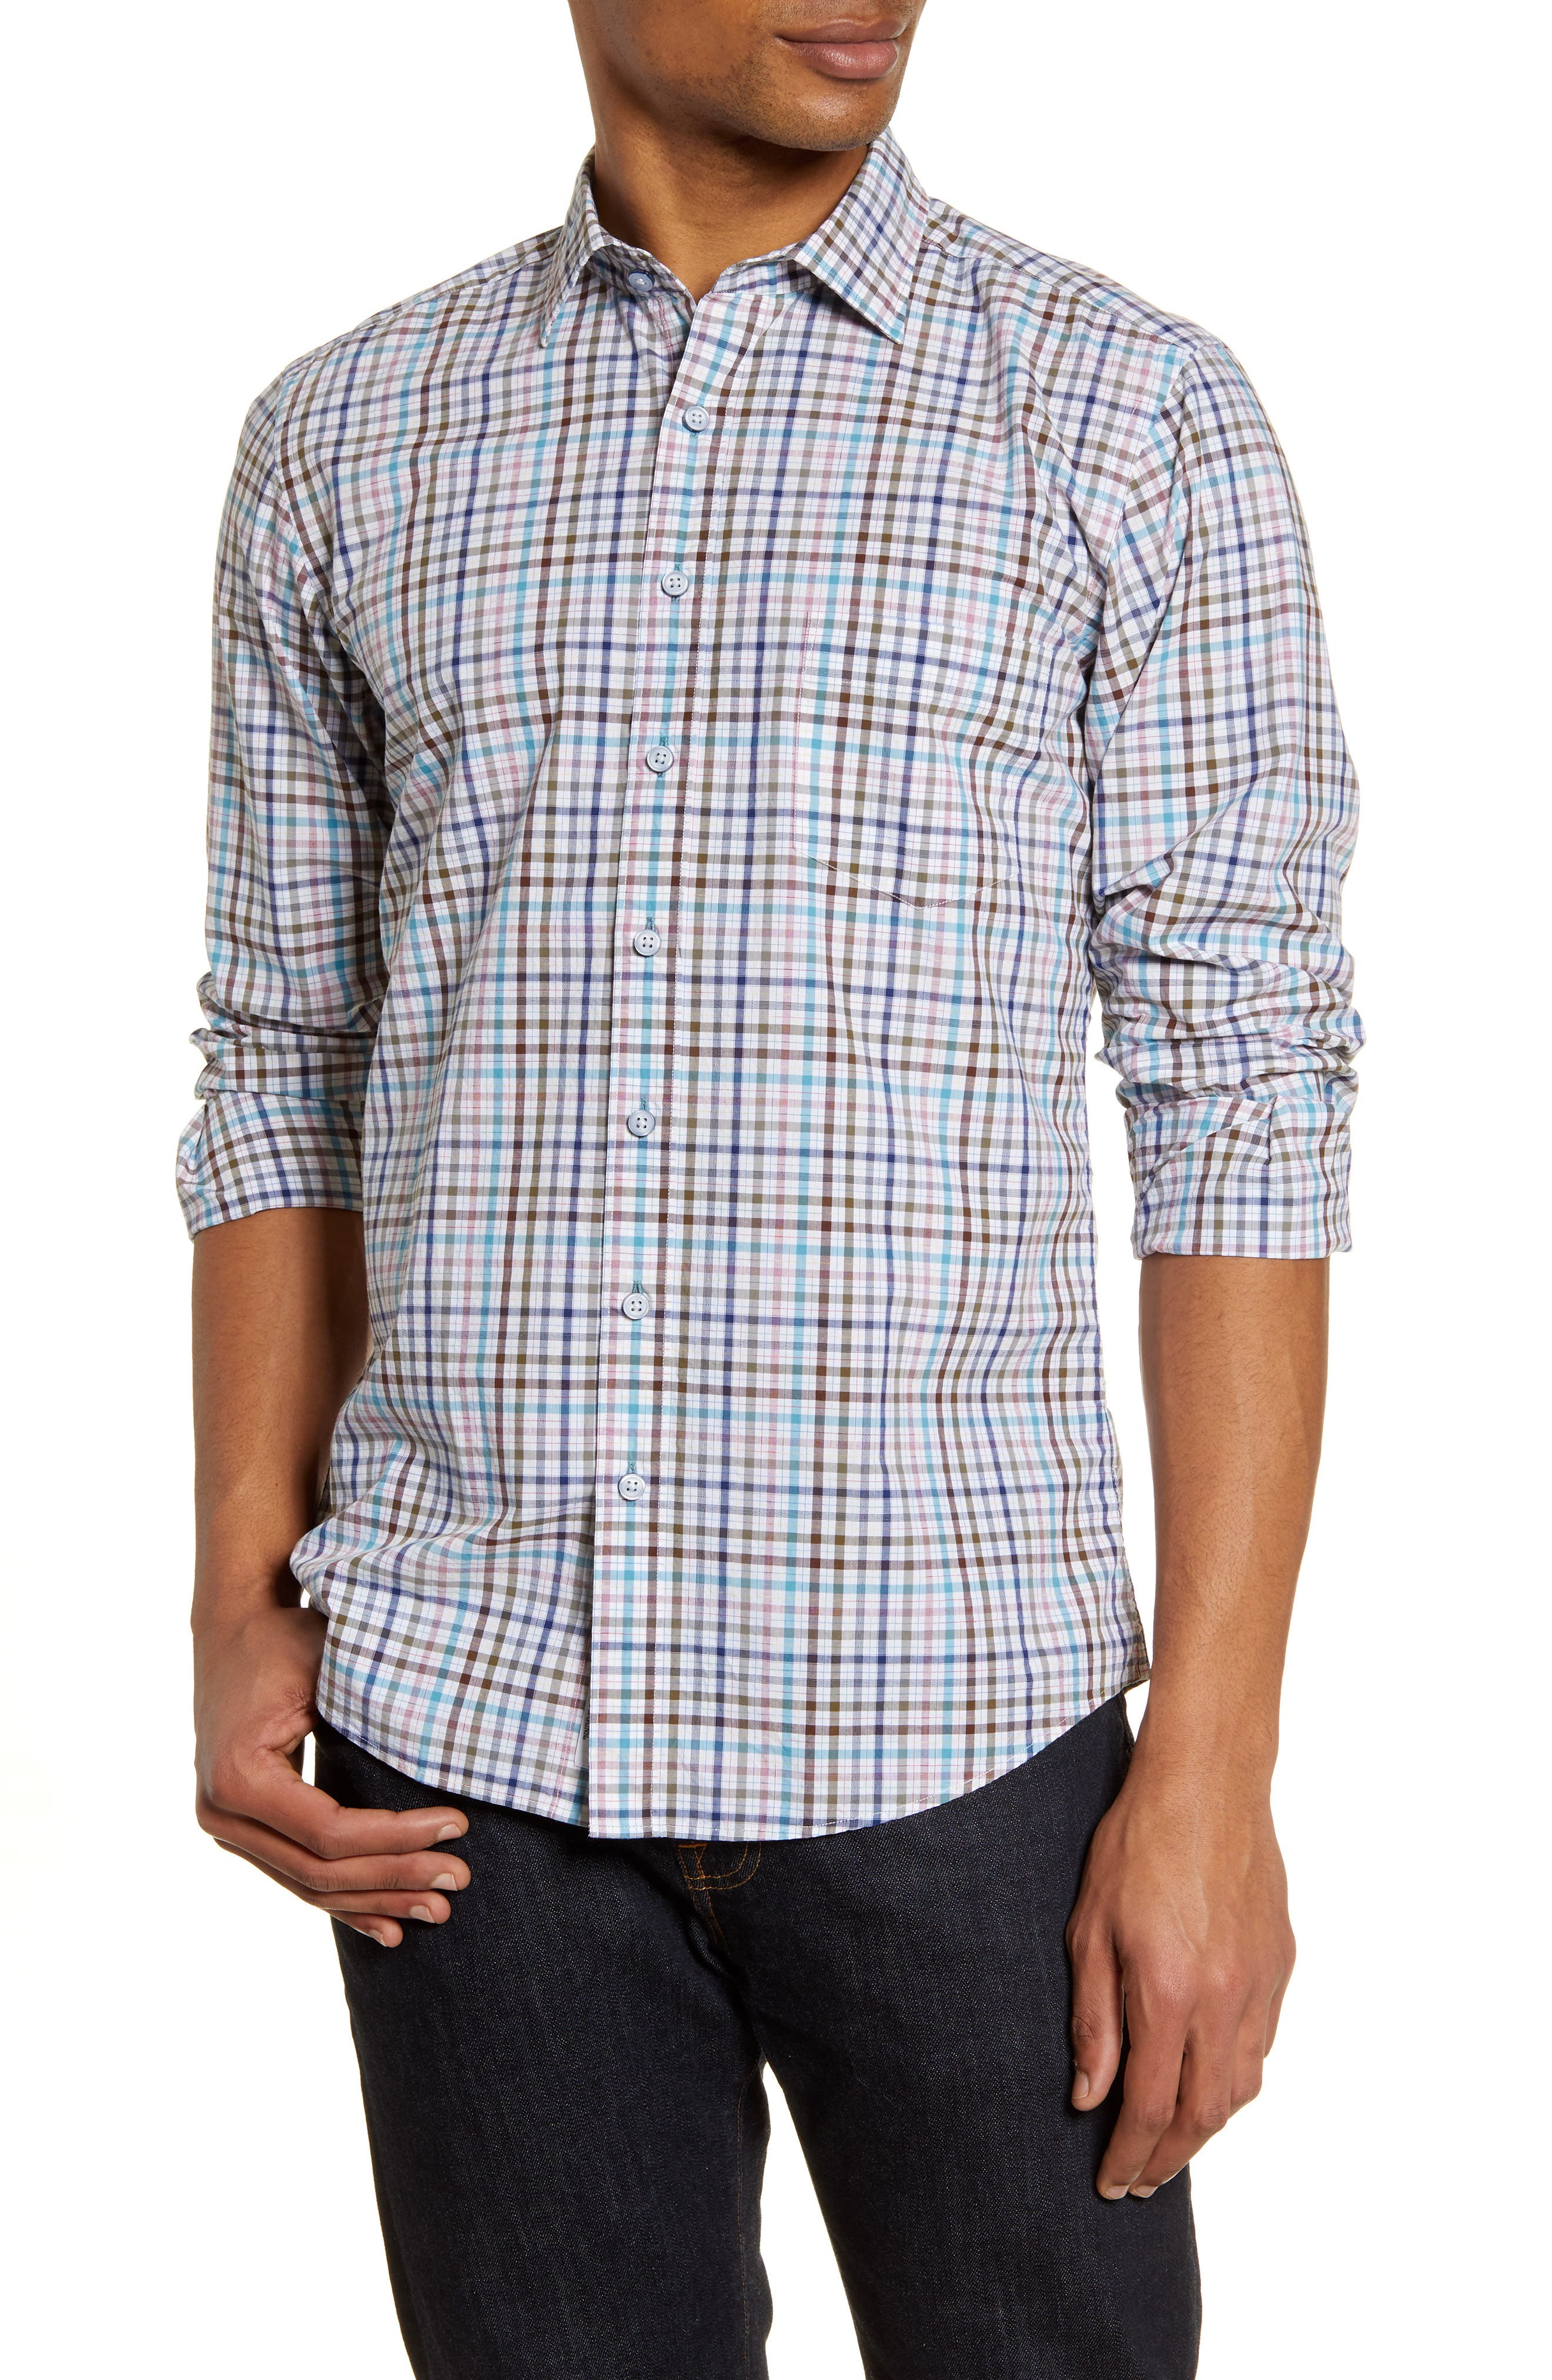 Image of RODD AND GUNN Coral Reef Classic Fit Check Button-Up Shirt